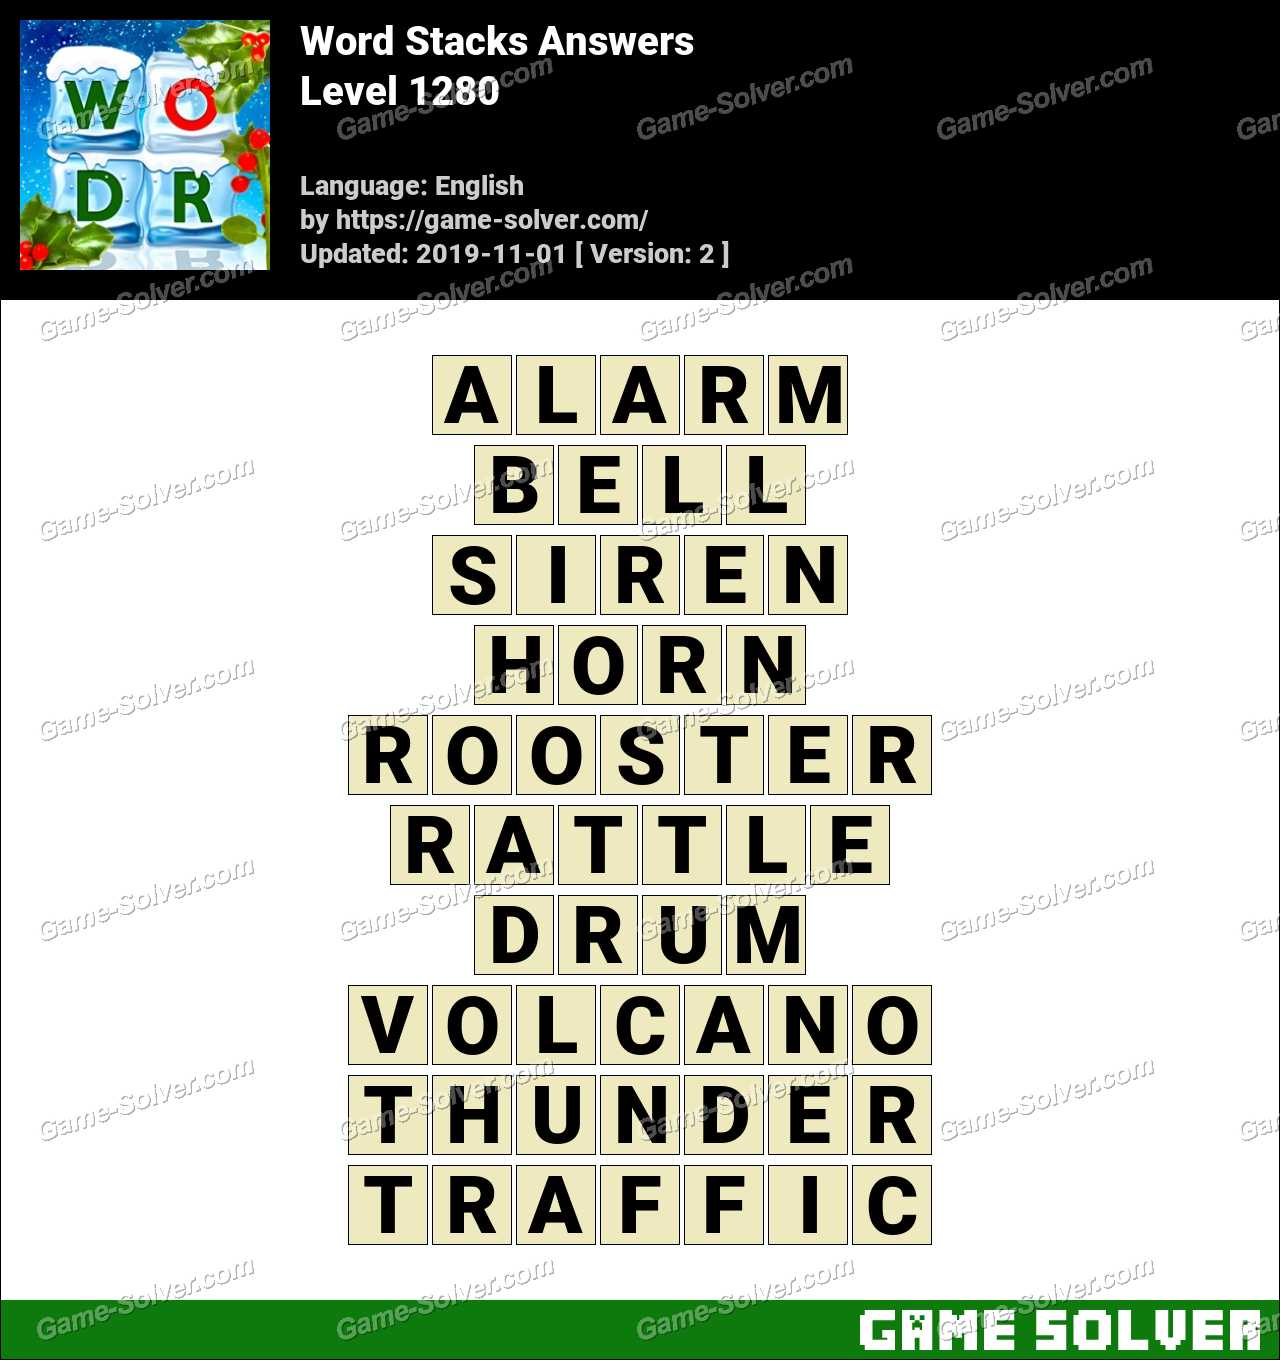 Word Stacks Level 1280 Answers